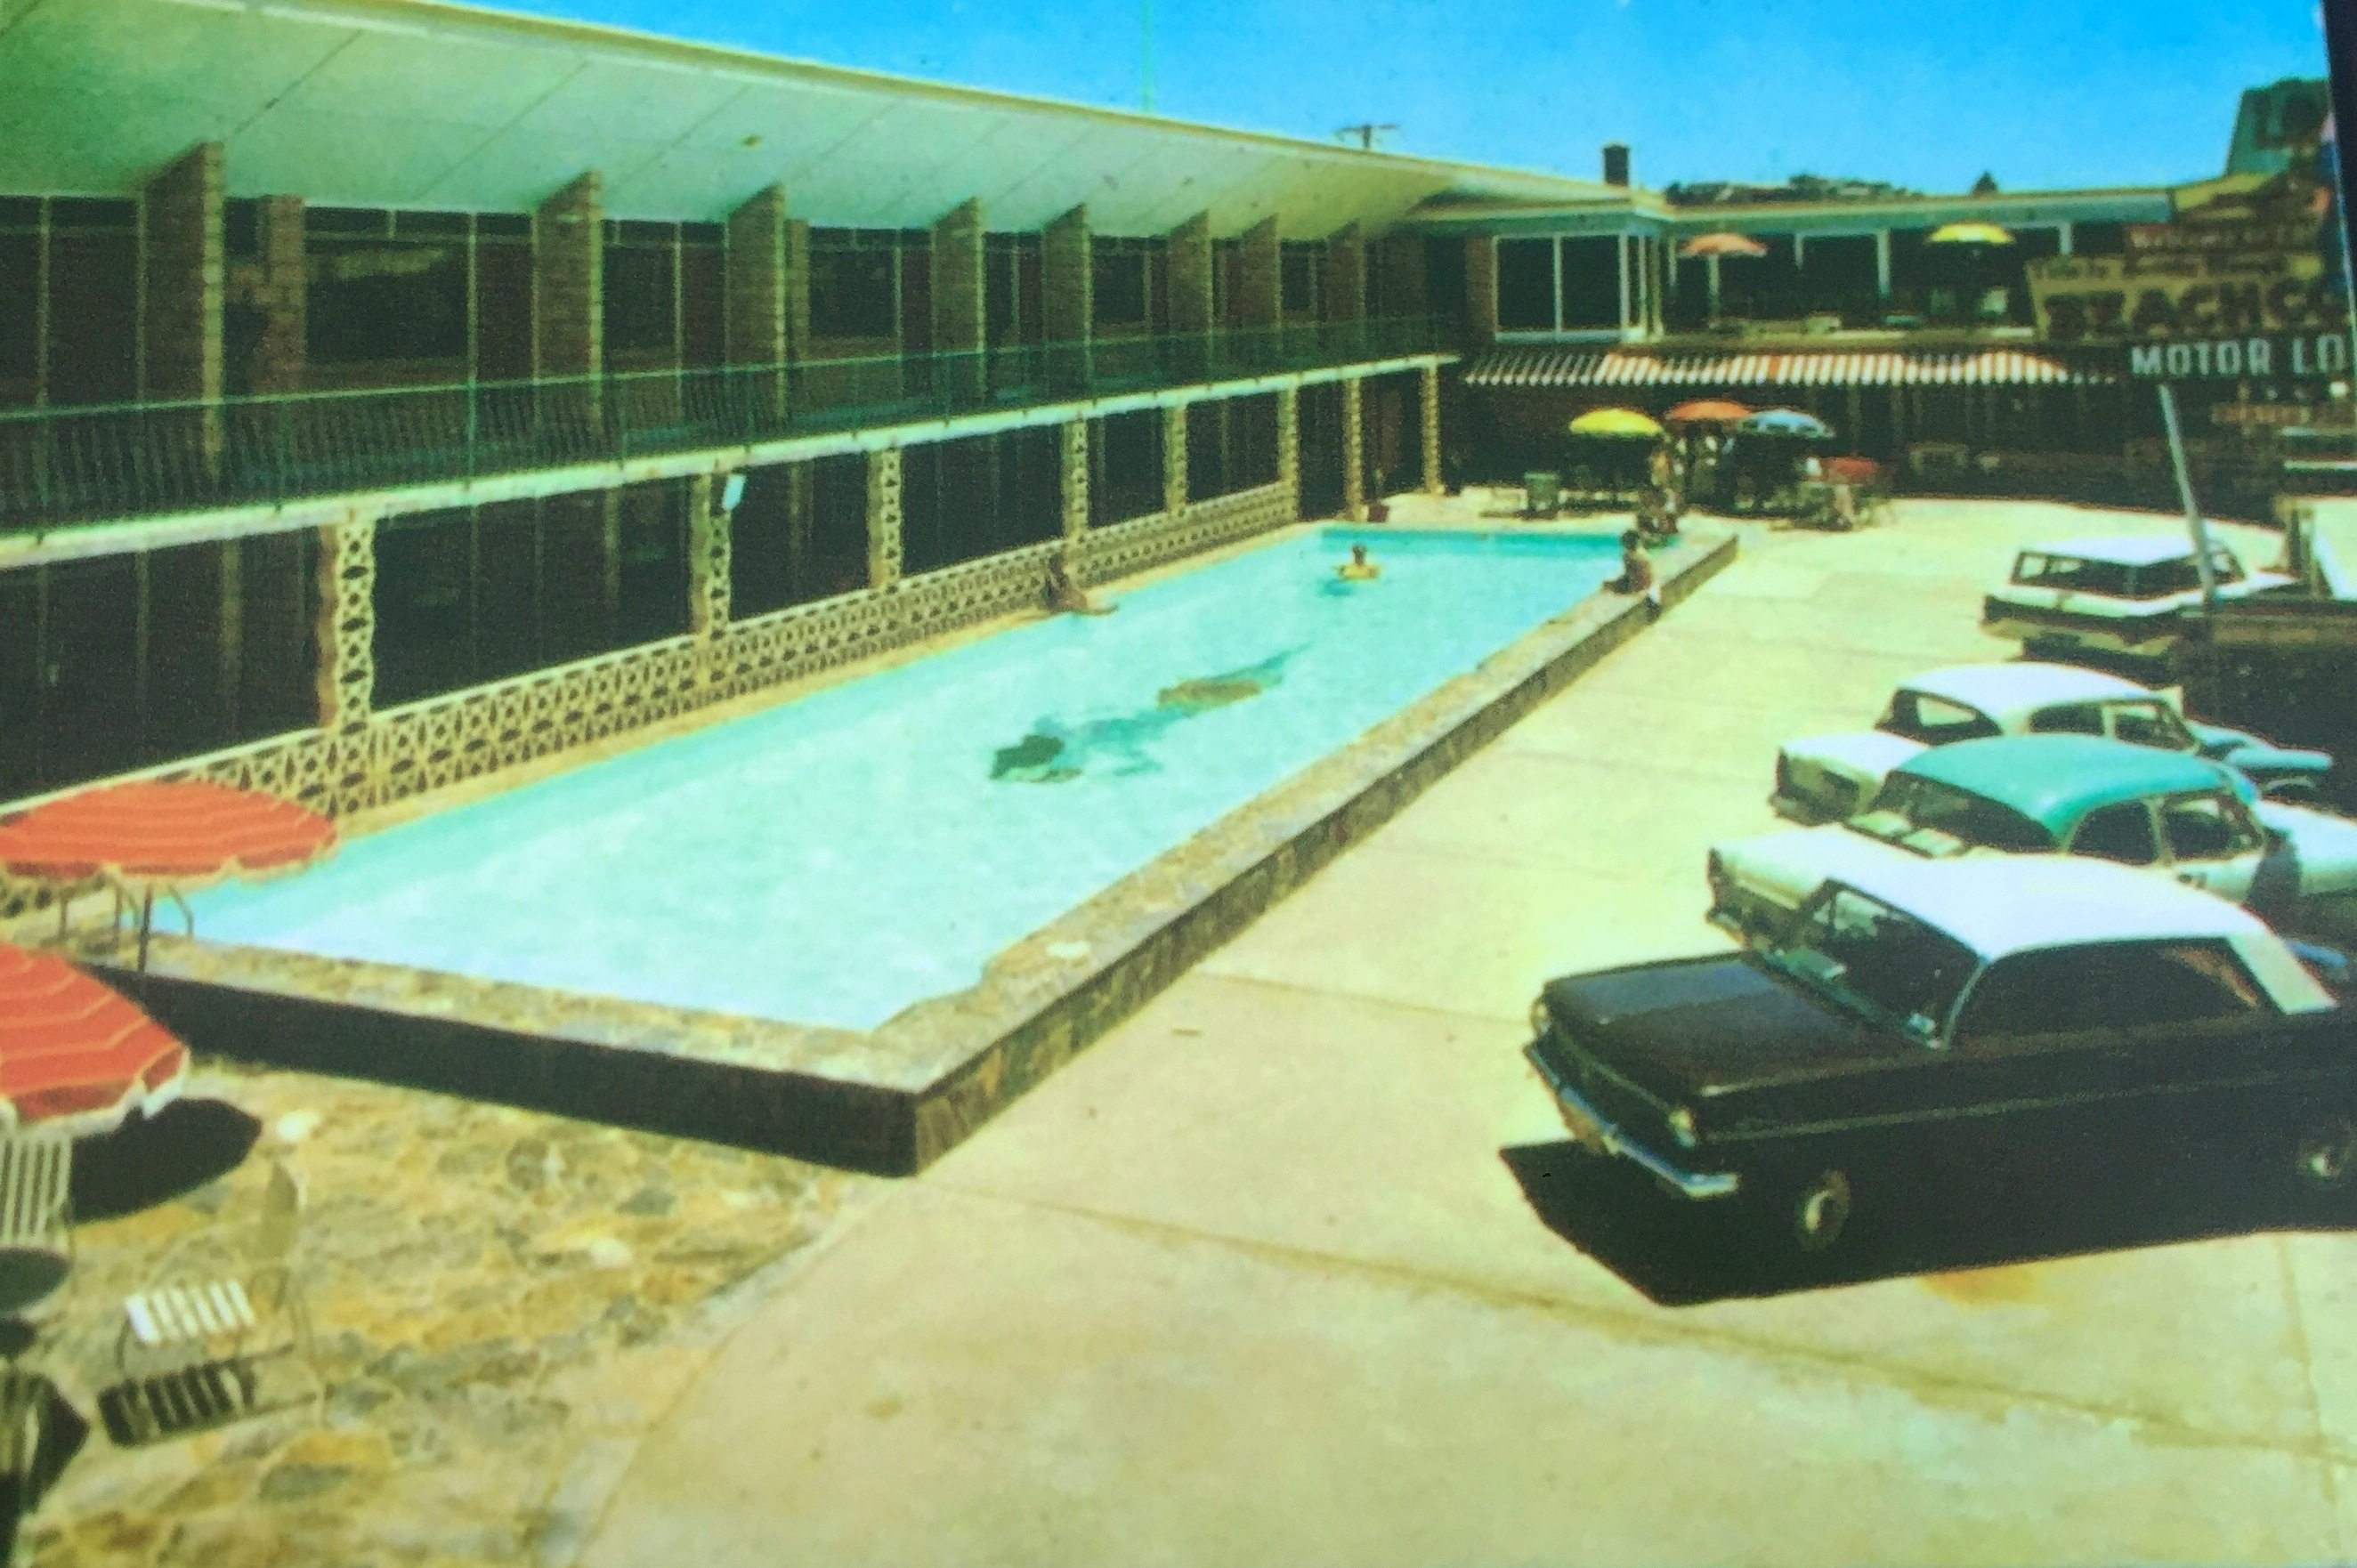 In 1957, hotelier Bernie Elsey and his friends started the legendary Pyjama Parties at his Beachcomber Hotel and Sea Breeze Hotel. The hotel was regularly raided to enforce an archaic law that prohibited the selling of alcohol where dancing was conducted.